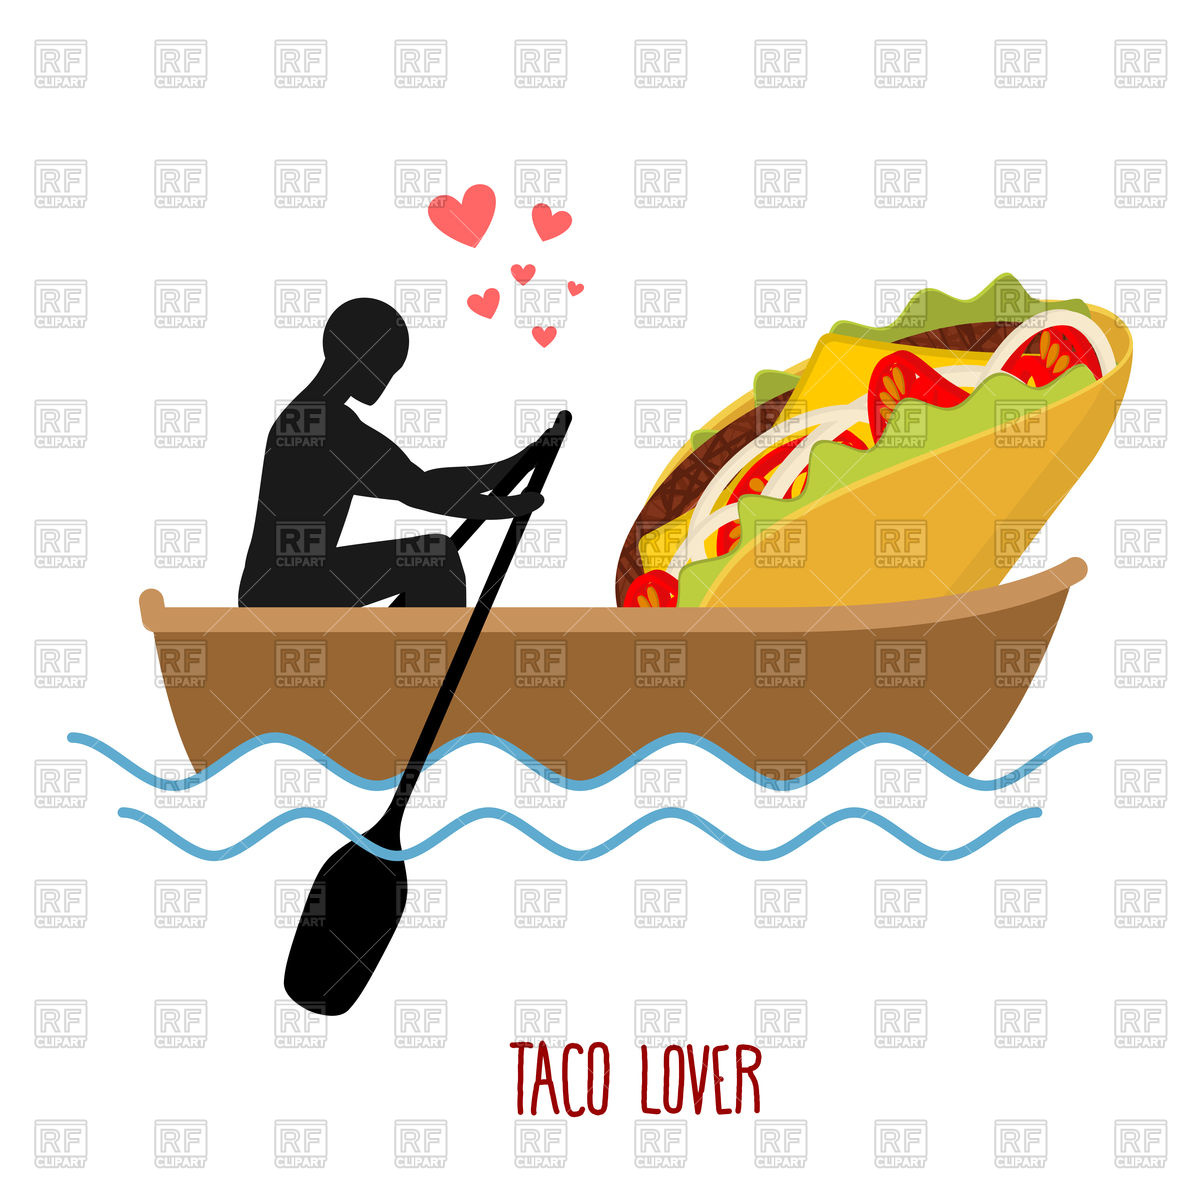 Love in boat, man and taco ride in boat Vector Image #130784.